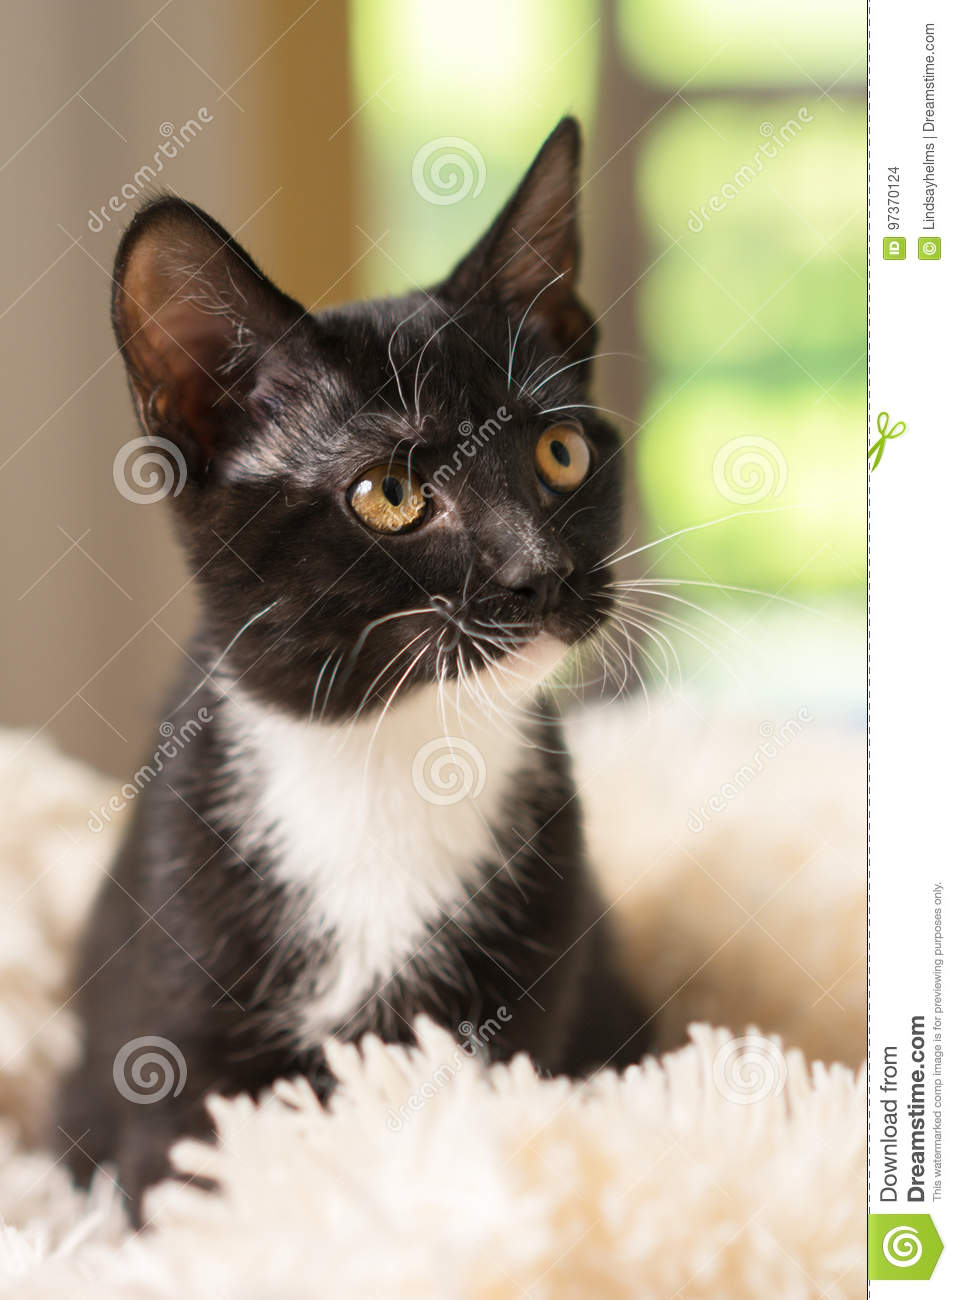 Black And White Kitten Close Up Stock Photo Image Of Watching